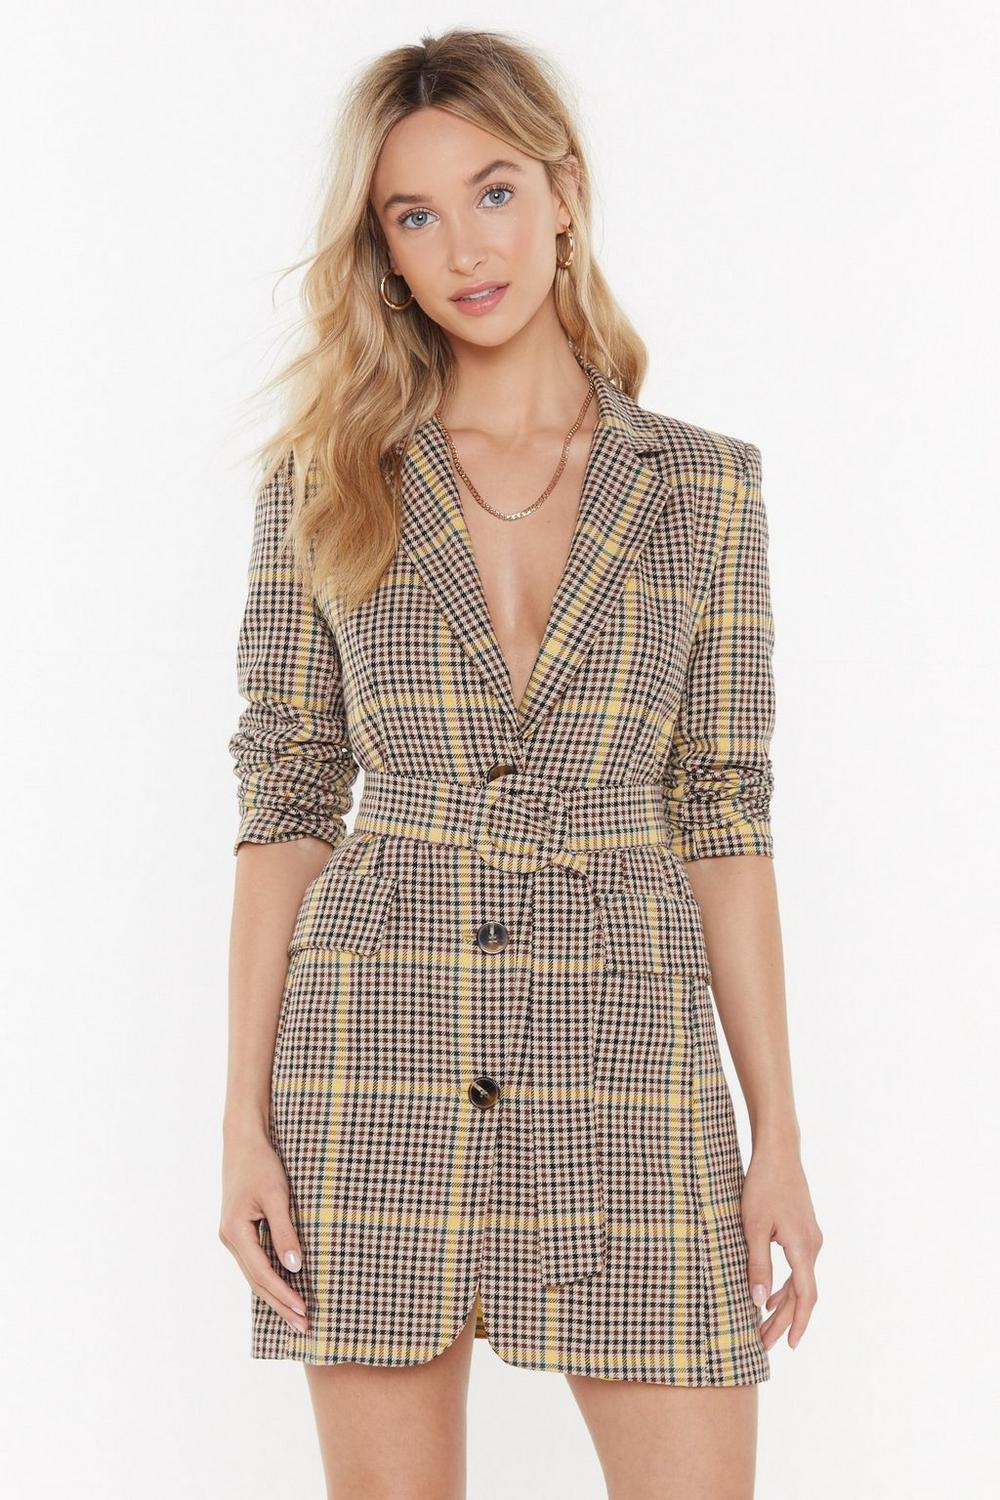 a422be66e8f9e Totally Checked Out Belted Blazer Dress | Shop Clothes at Nasty Gal!